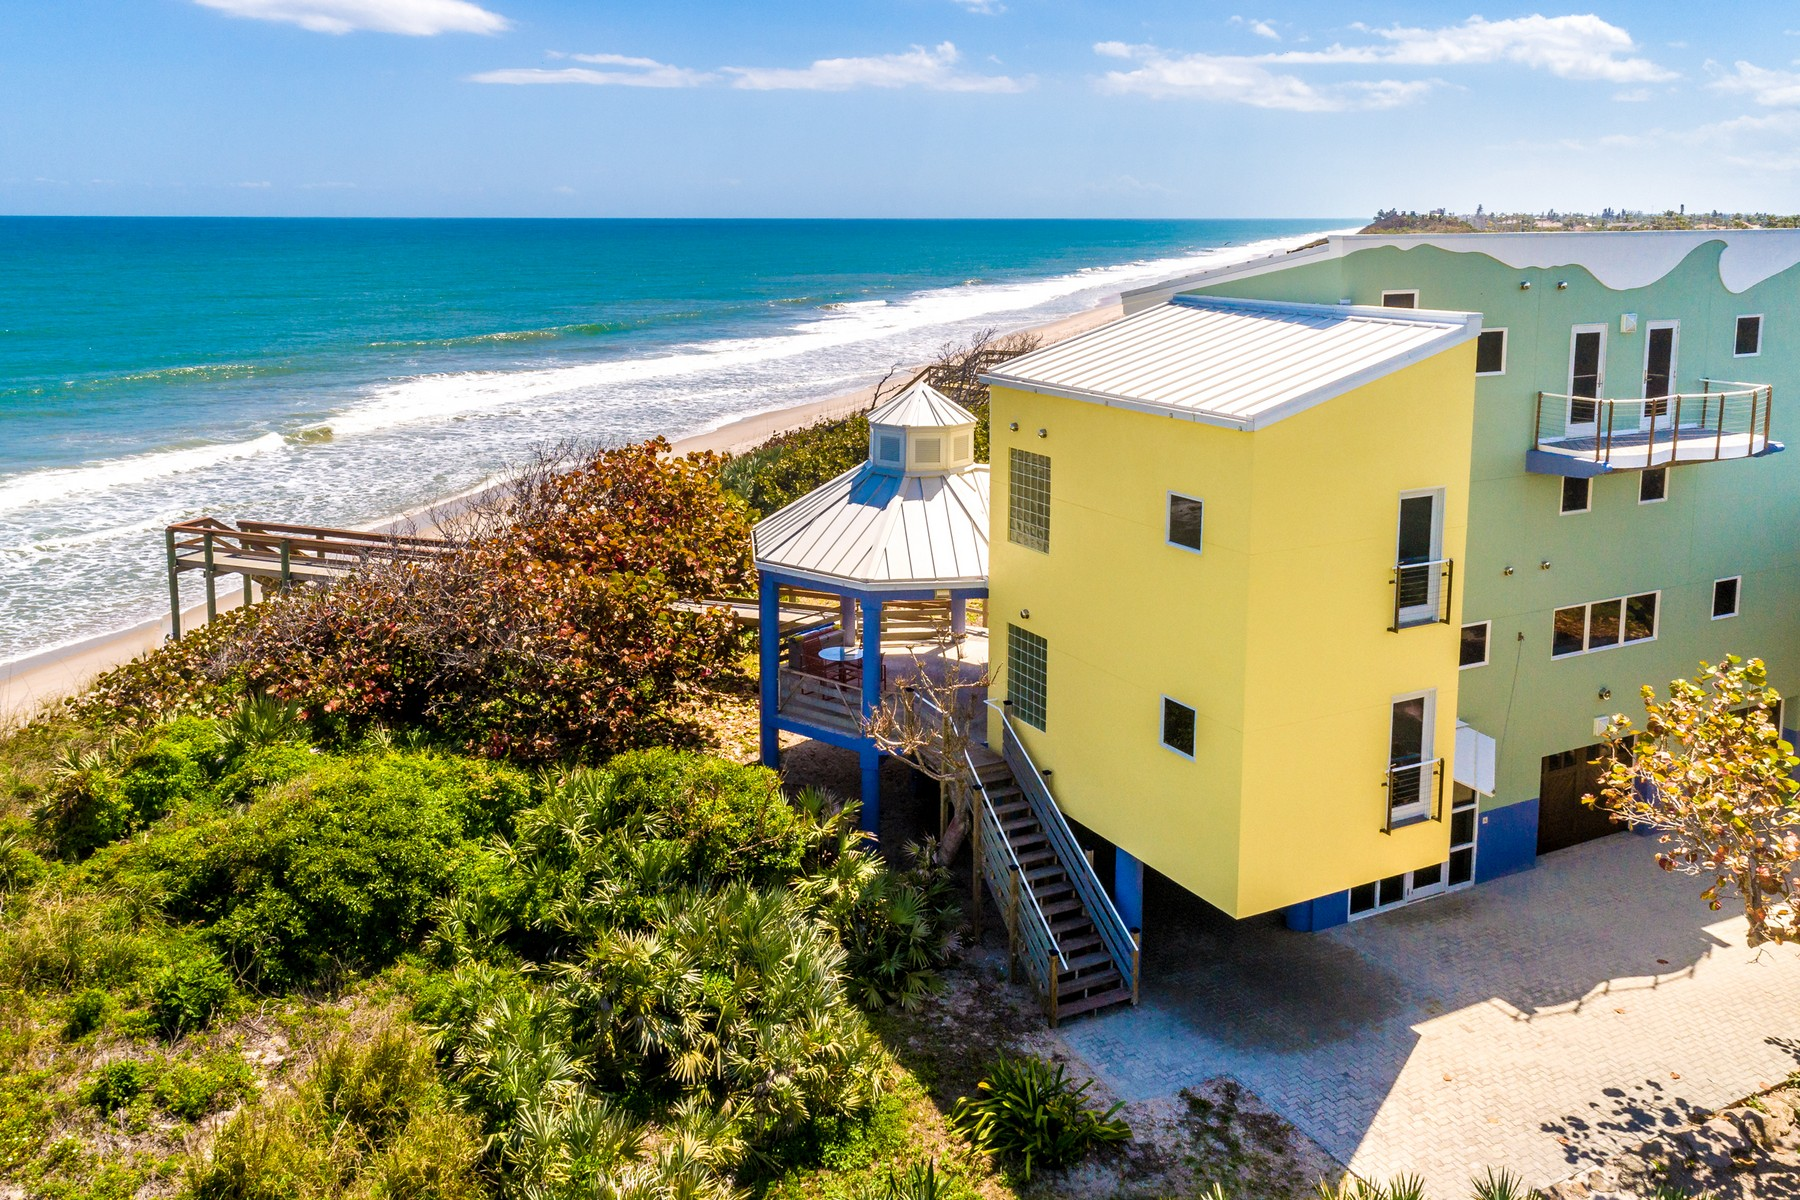 Property для того Продажа на Spectacular Oceanfront Home Bordering Nature Preserve. 4515 Highway A1A Melbourne Beach, Флорида 32951 Соединенные Штаты